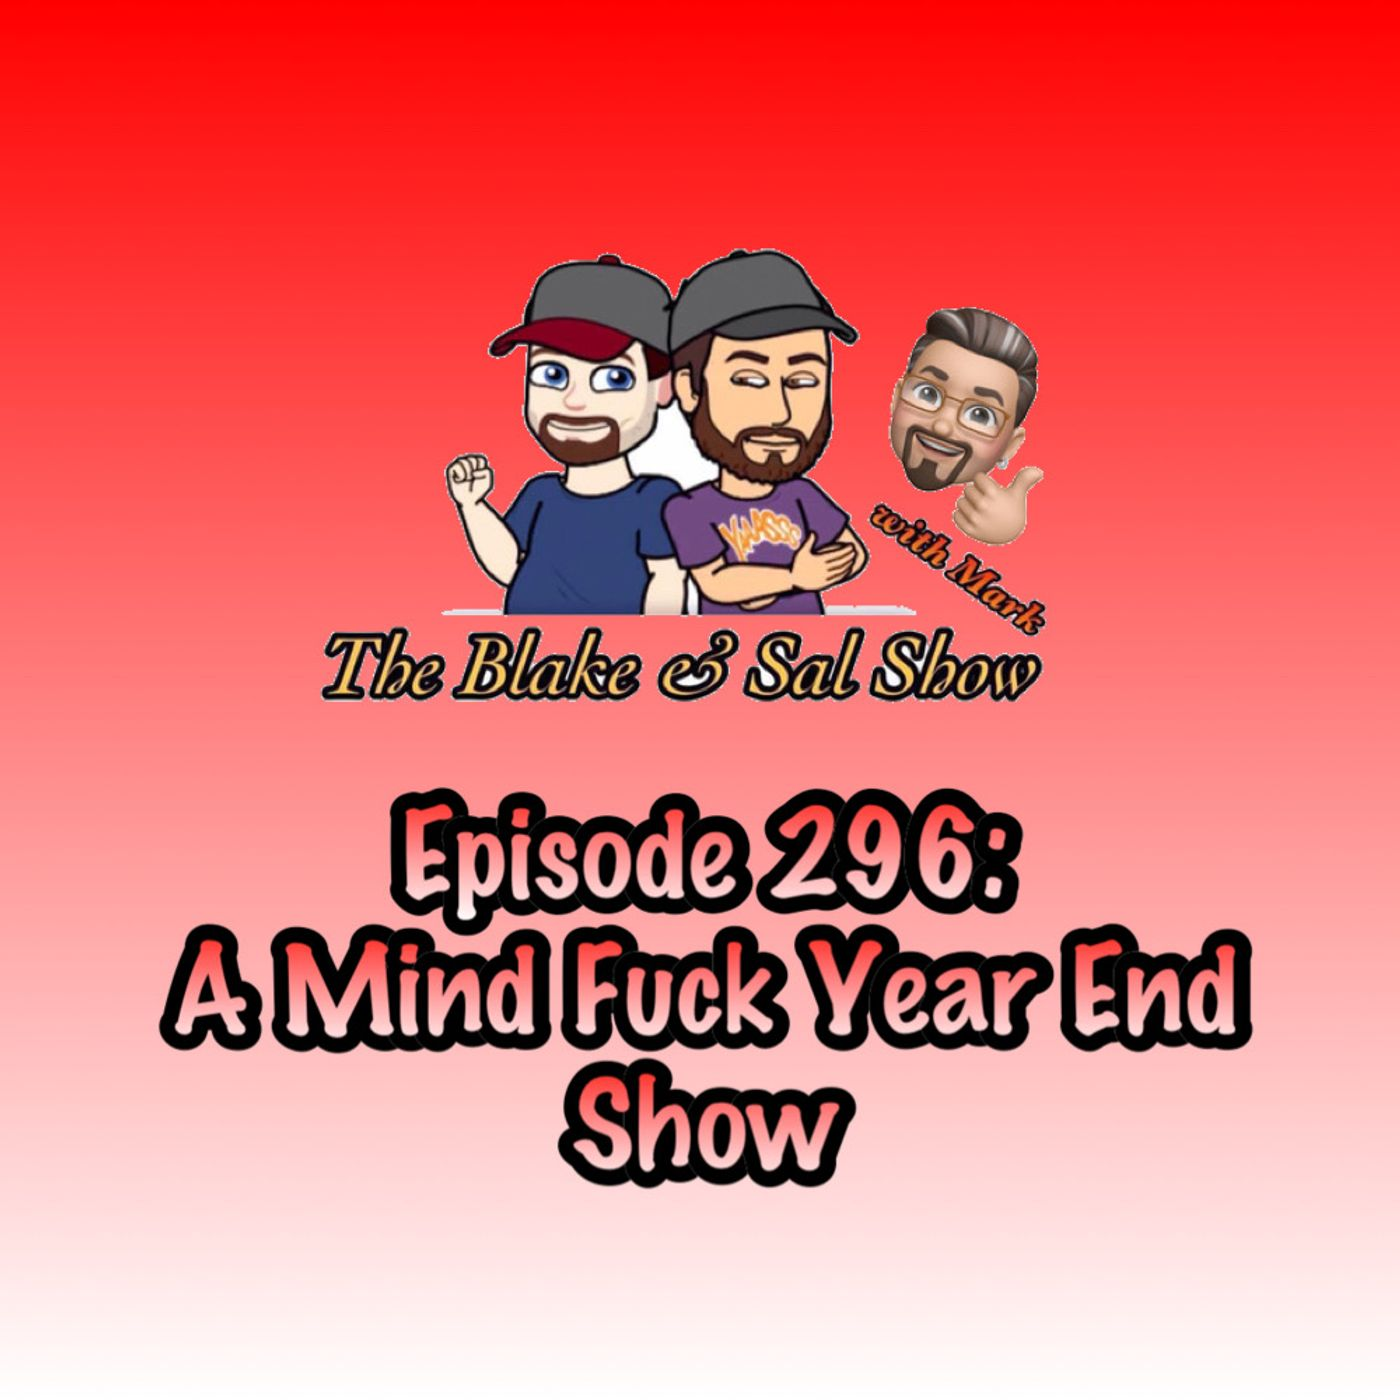 Episode 296: A Mind F*ck Year End Show (Special Guest: Kyle Crane)